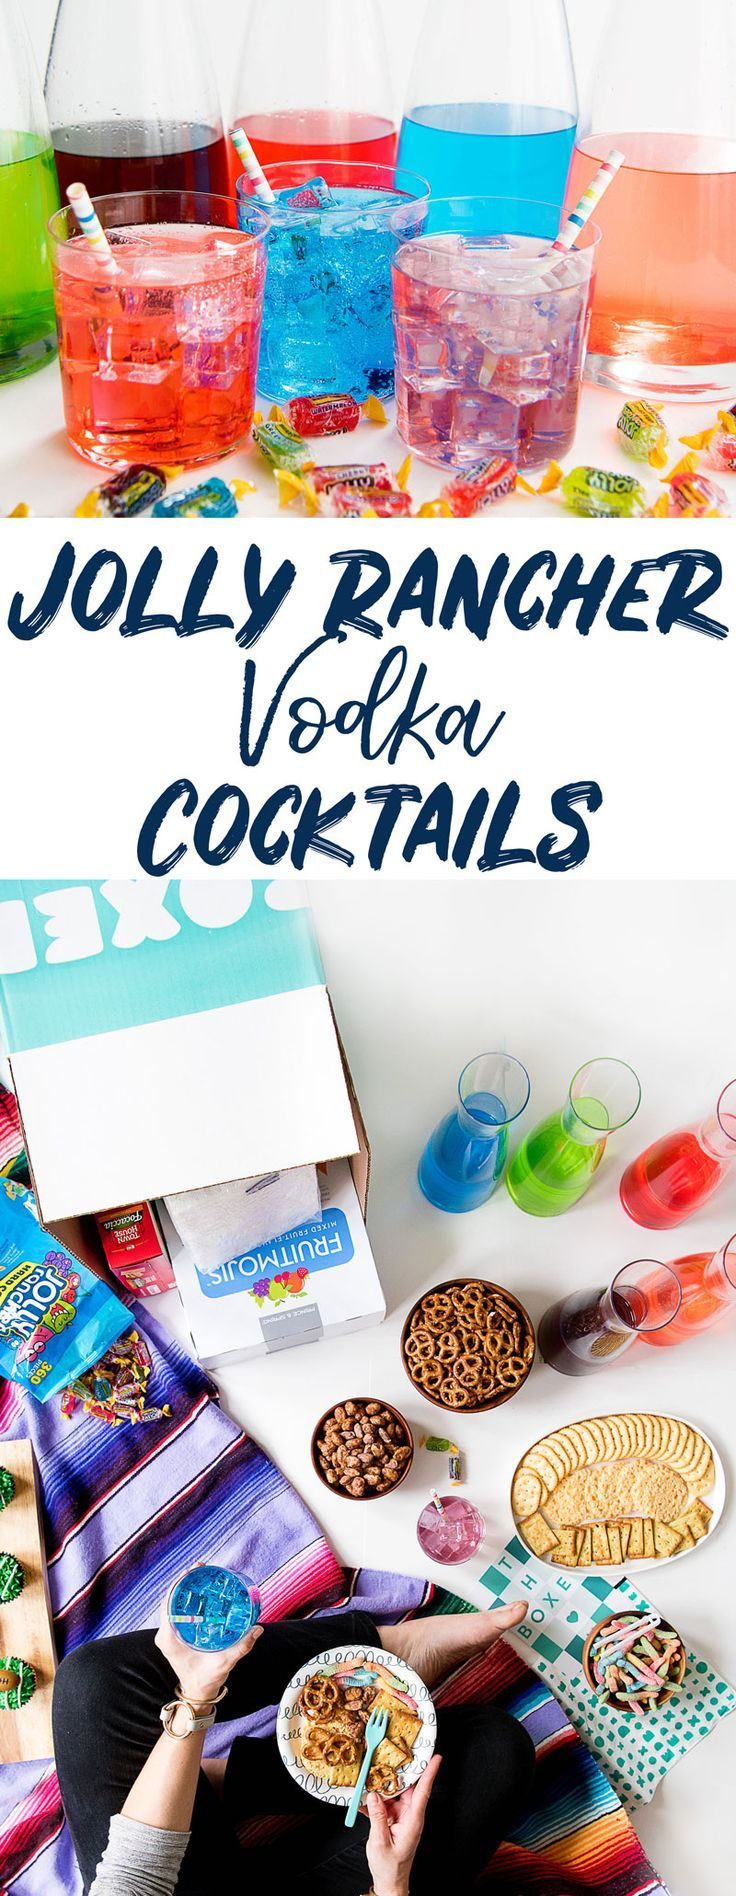 How to Make Jolly Rancher Vodka Recipe for Rainbow Cocktails! #cocktails #vodka